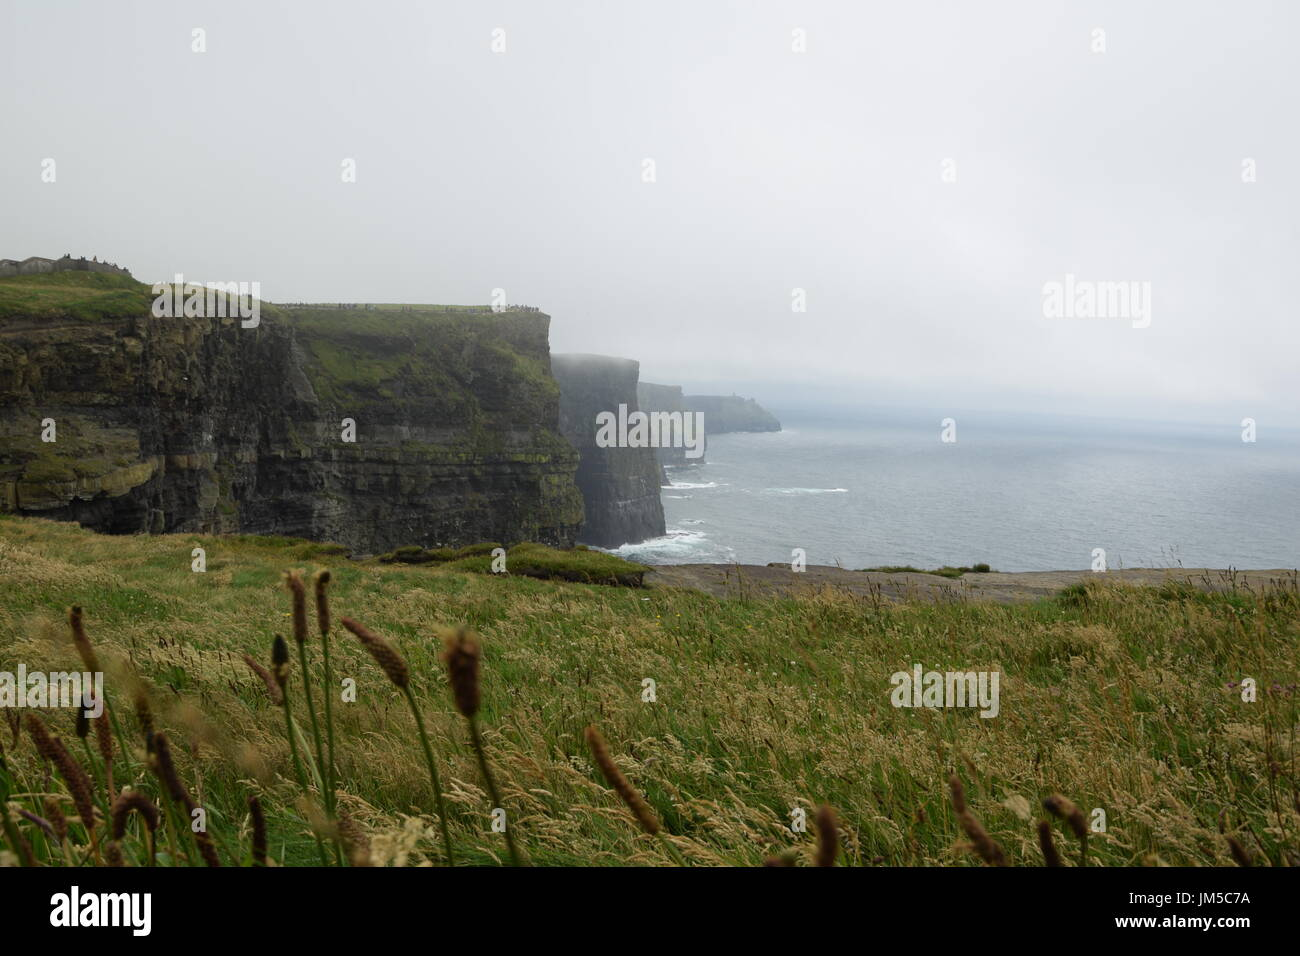 View of the Cliffs of Moher in the County Clare, west Ireland - Stock Image